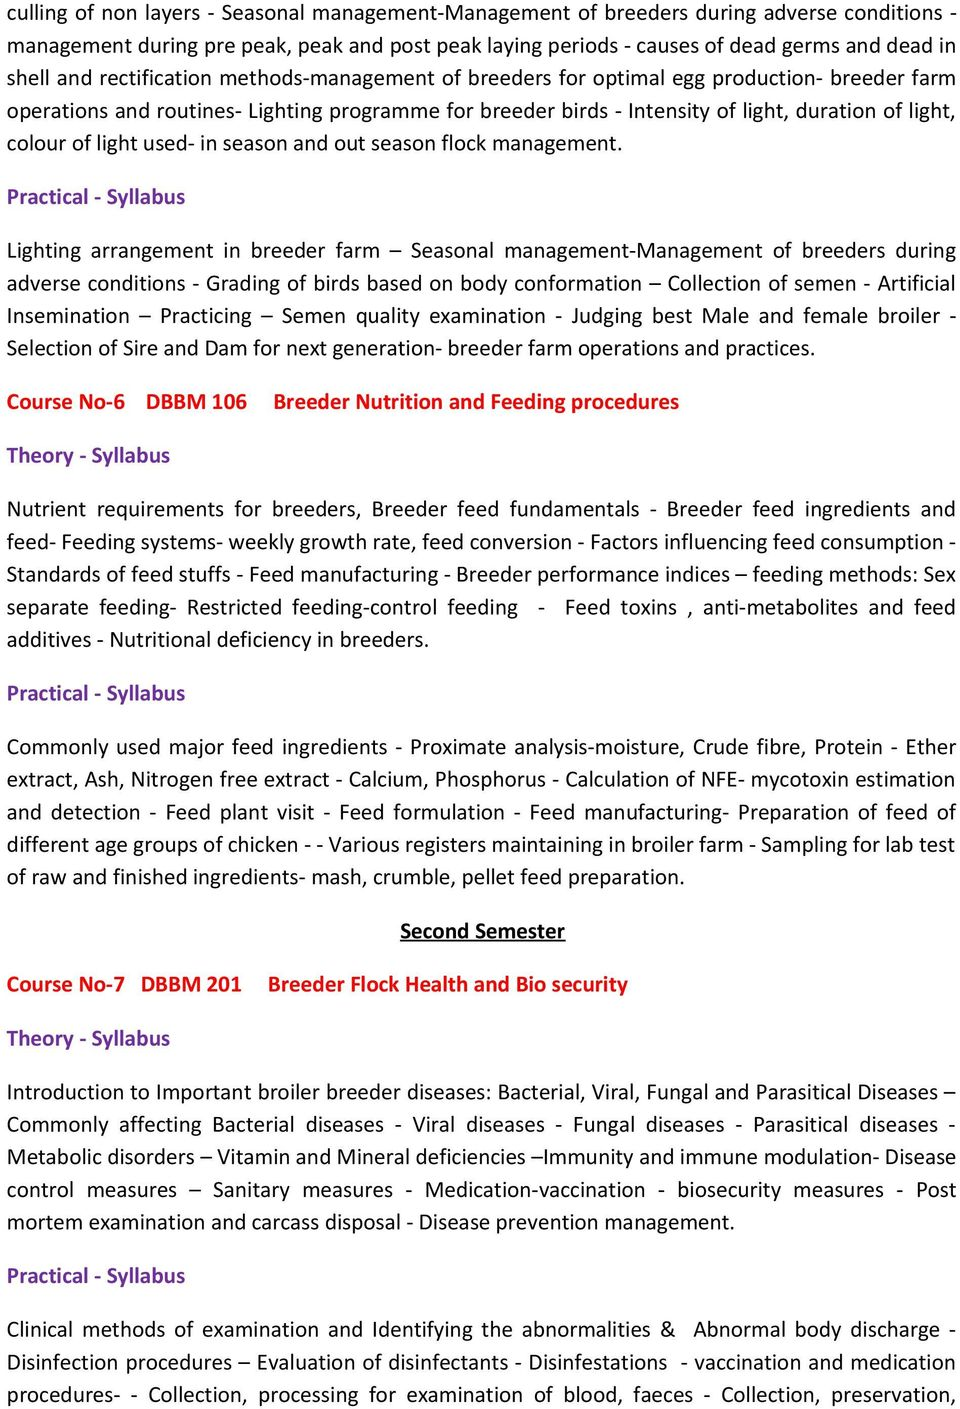 Poultry Feed Ingredients Pdf